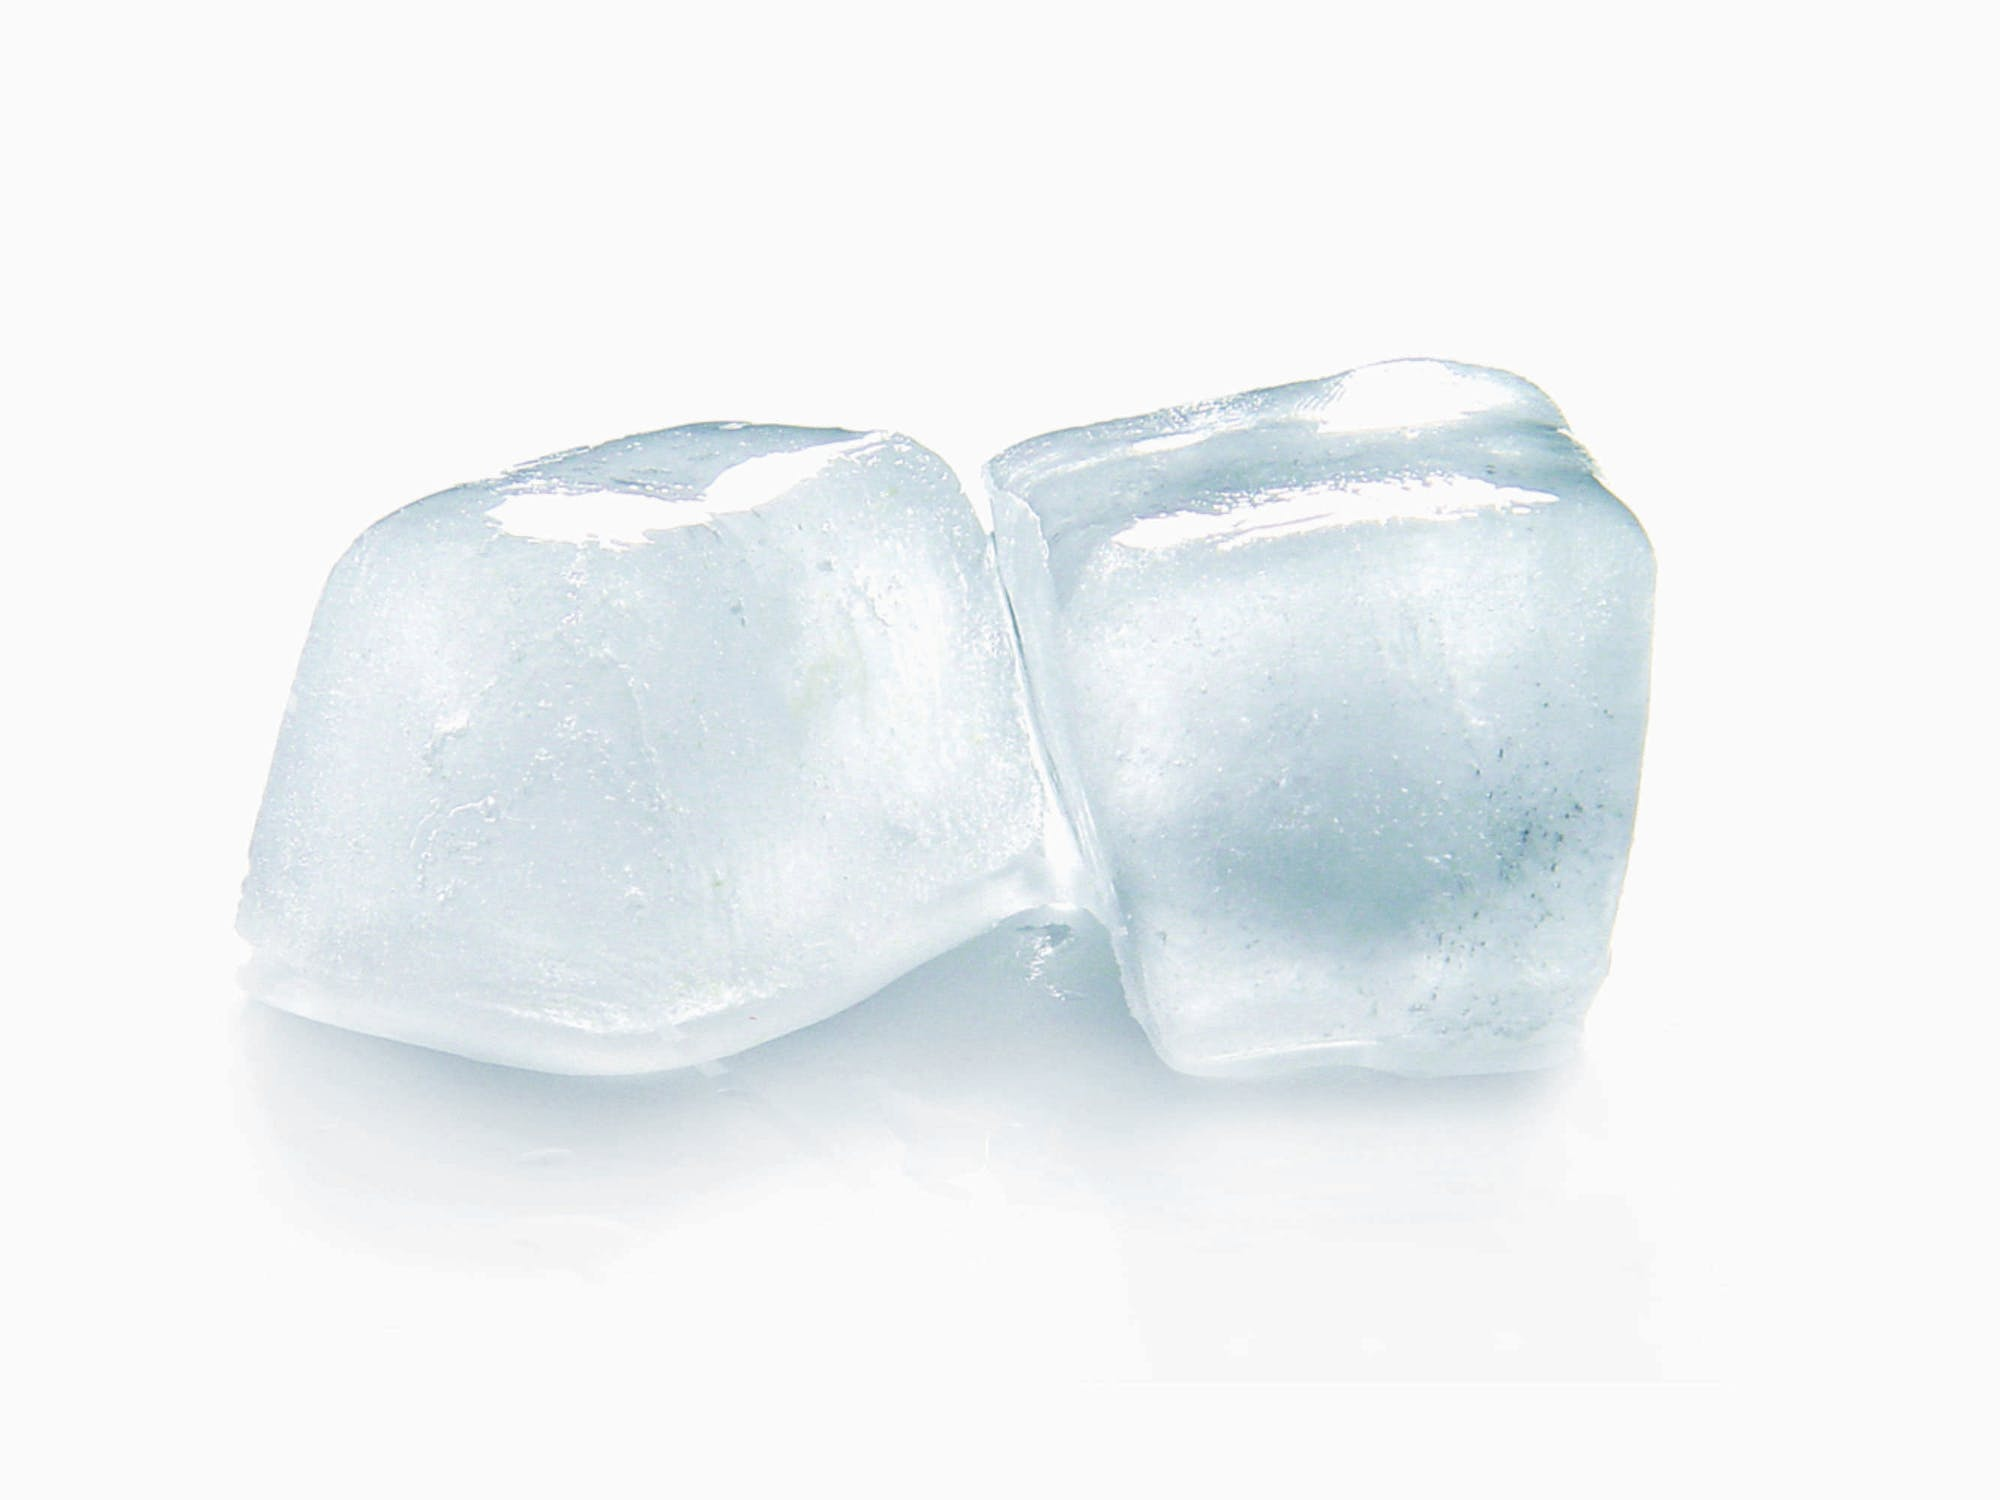 Ice cubs that can be utilized in cold therapy